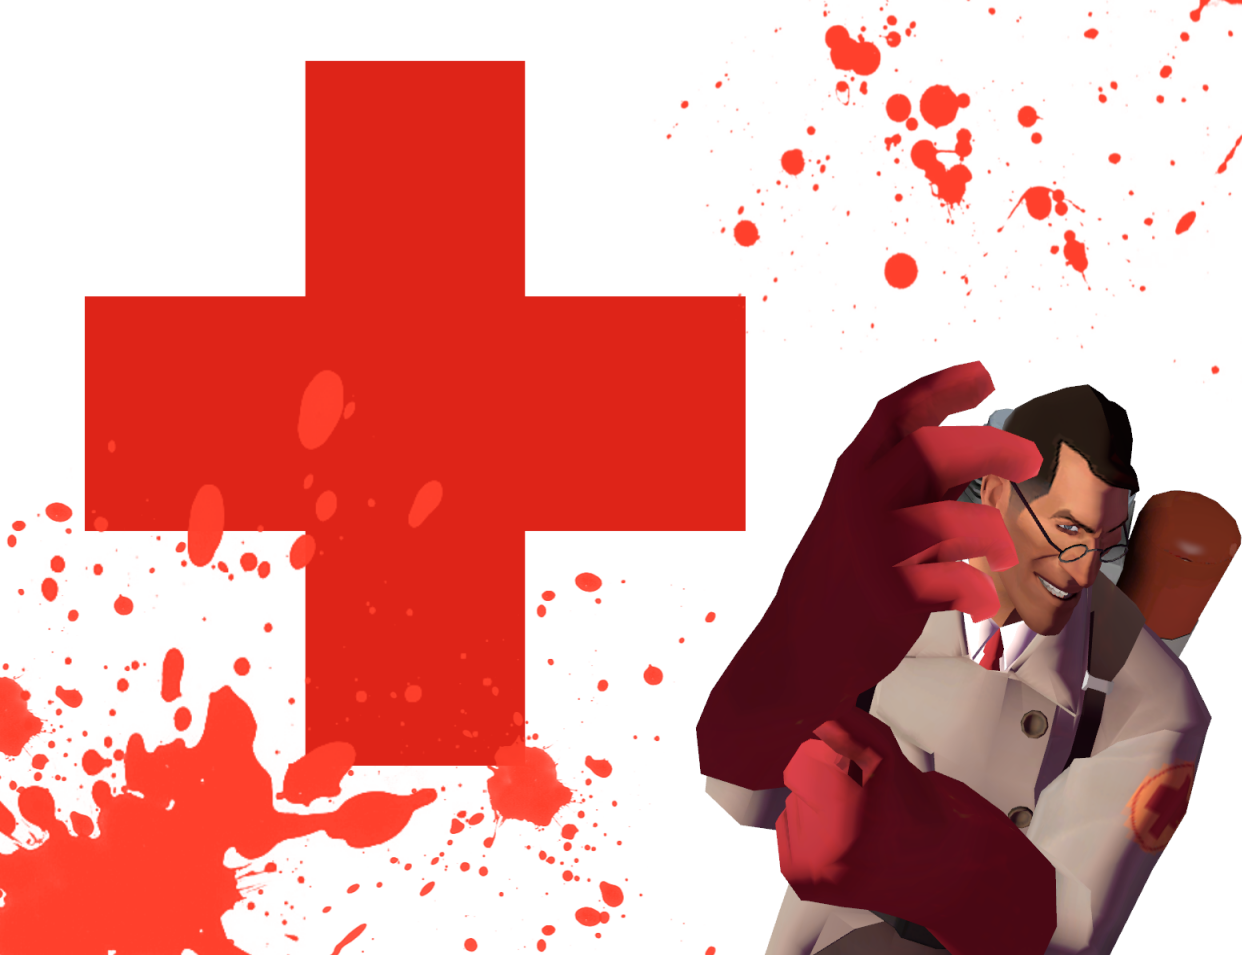 TF2-Red-Medic-team-fortress-2-tf2-36936420-1280-1024